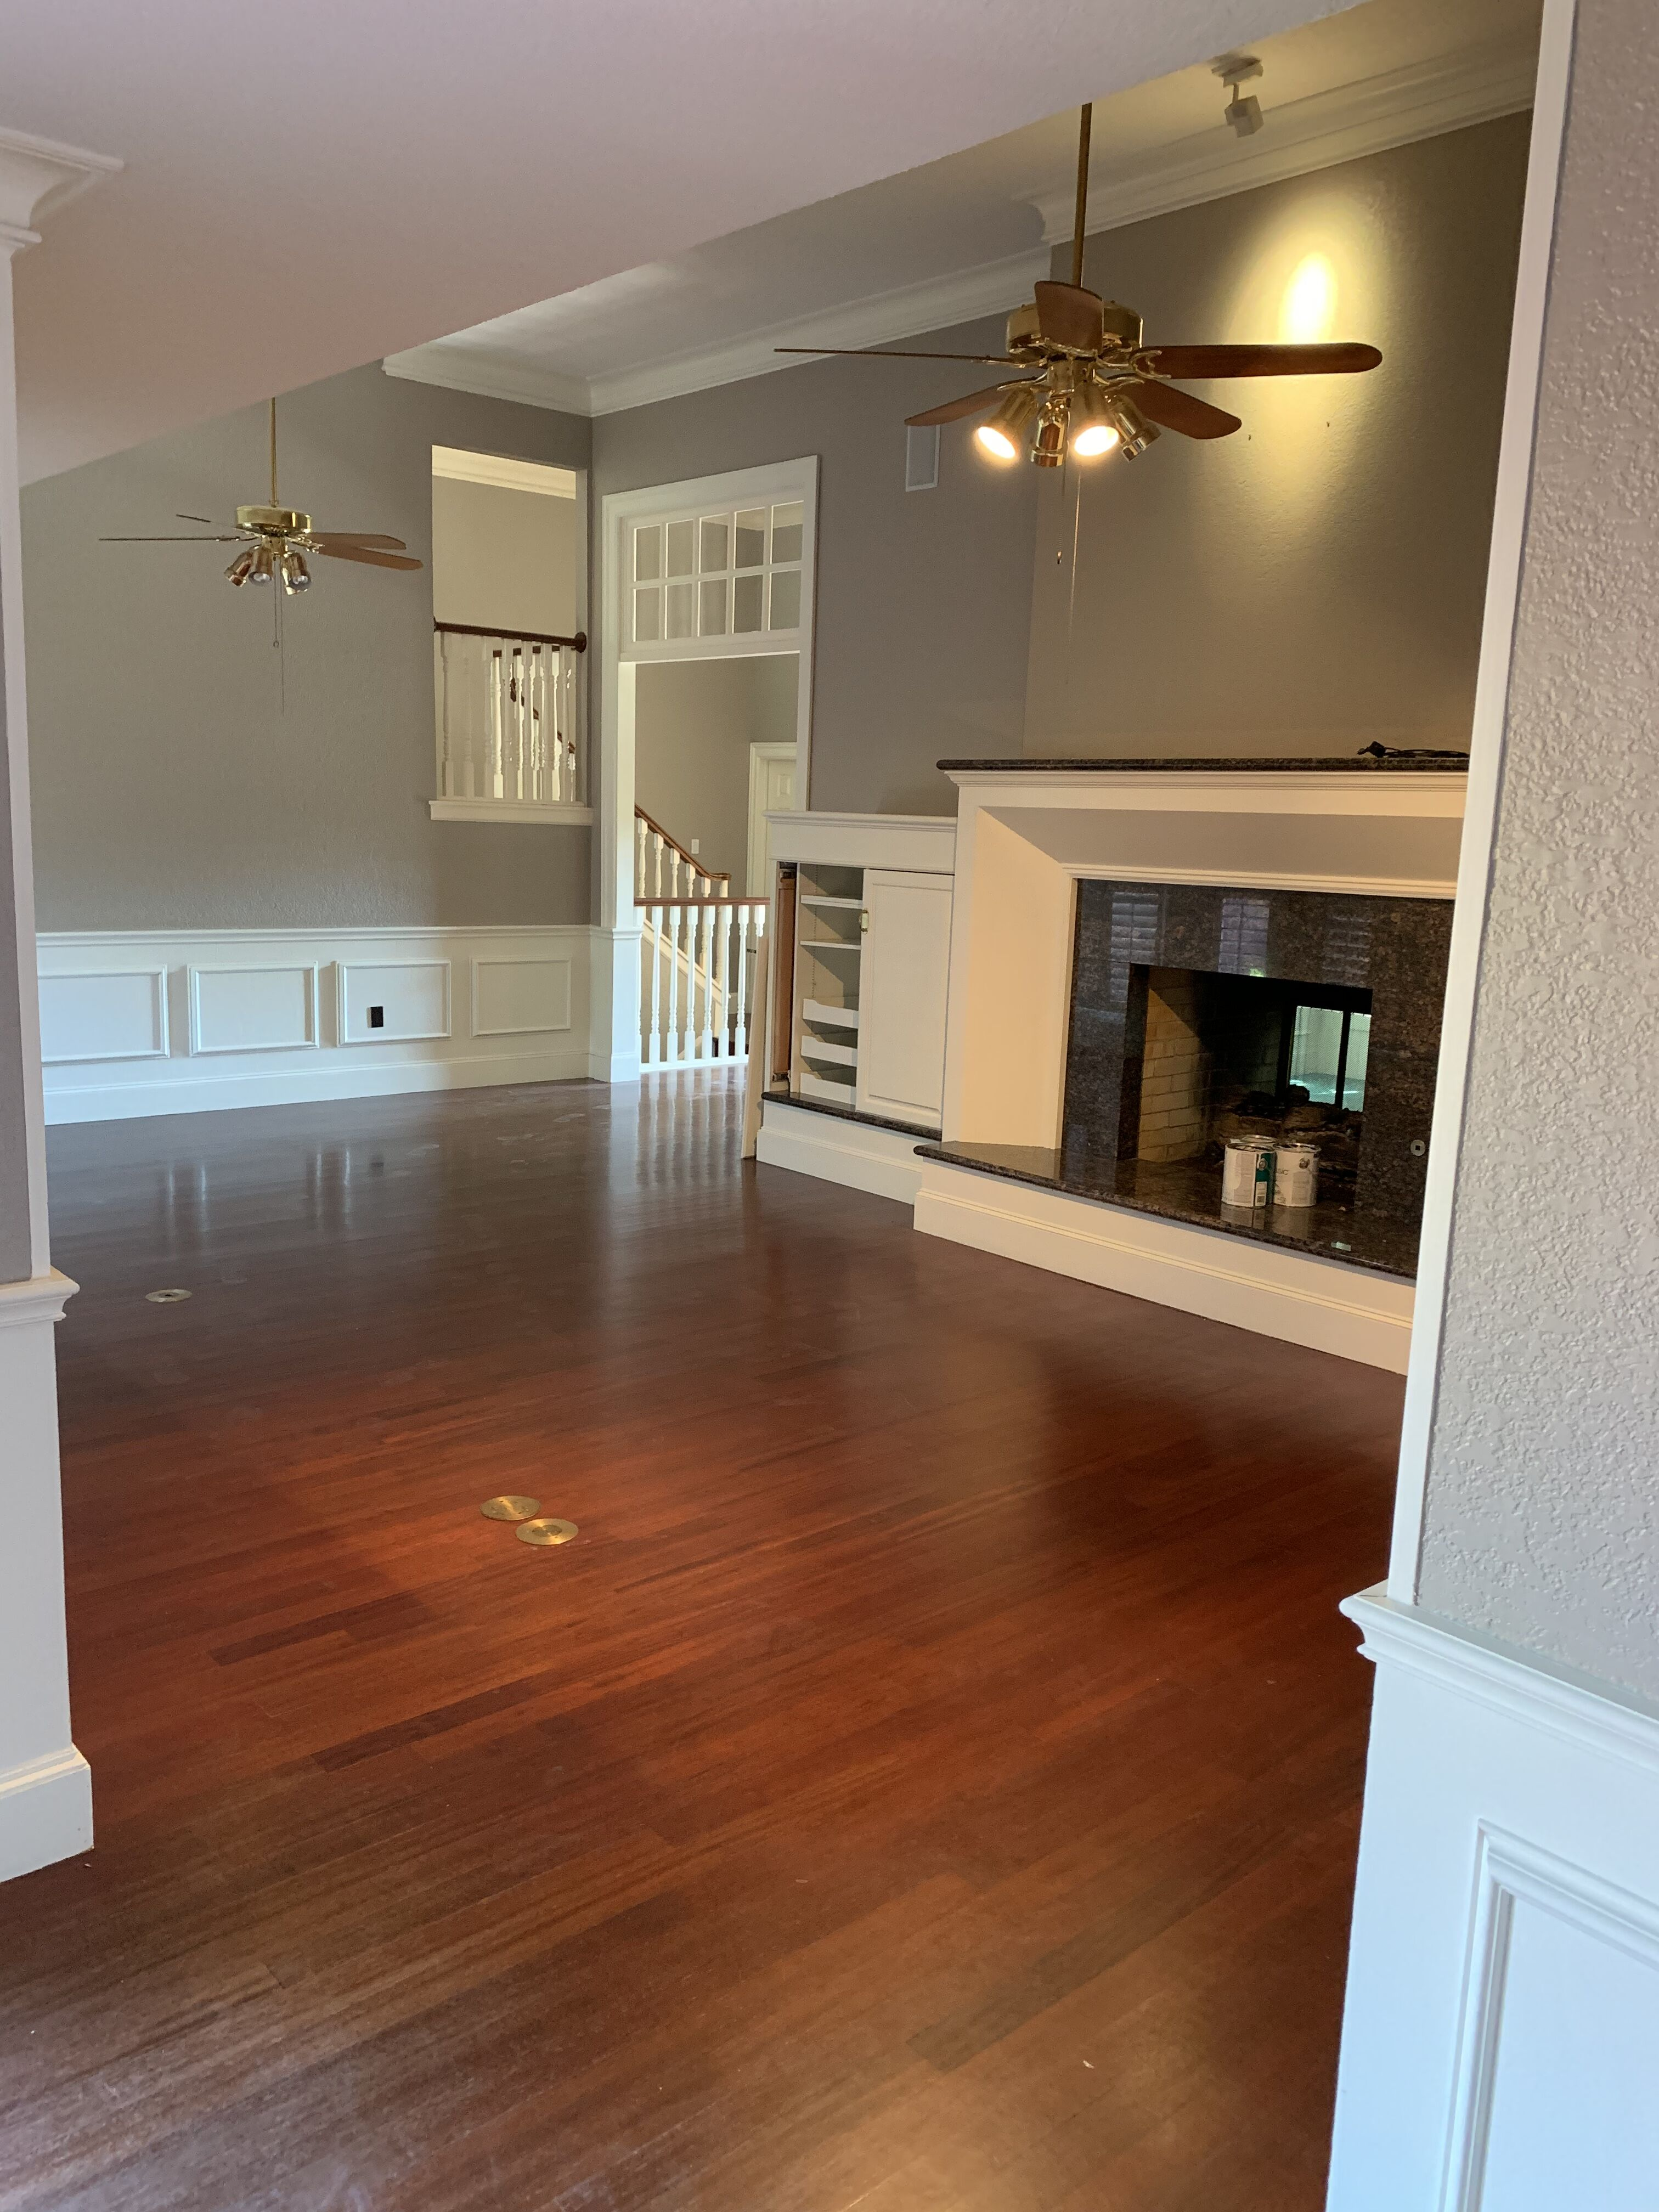 Professional interior painters in DFW